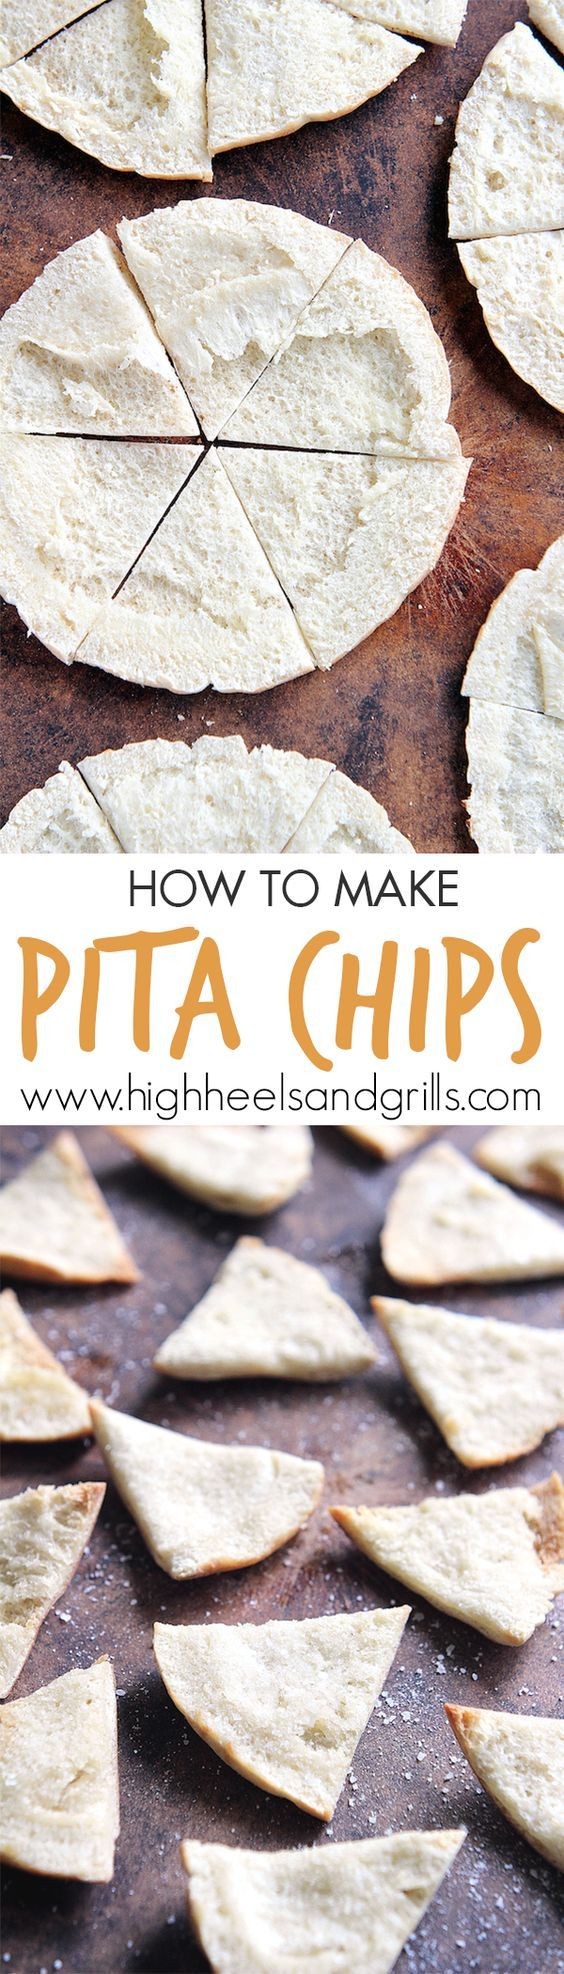 cool How to Make Pita Chips